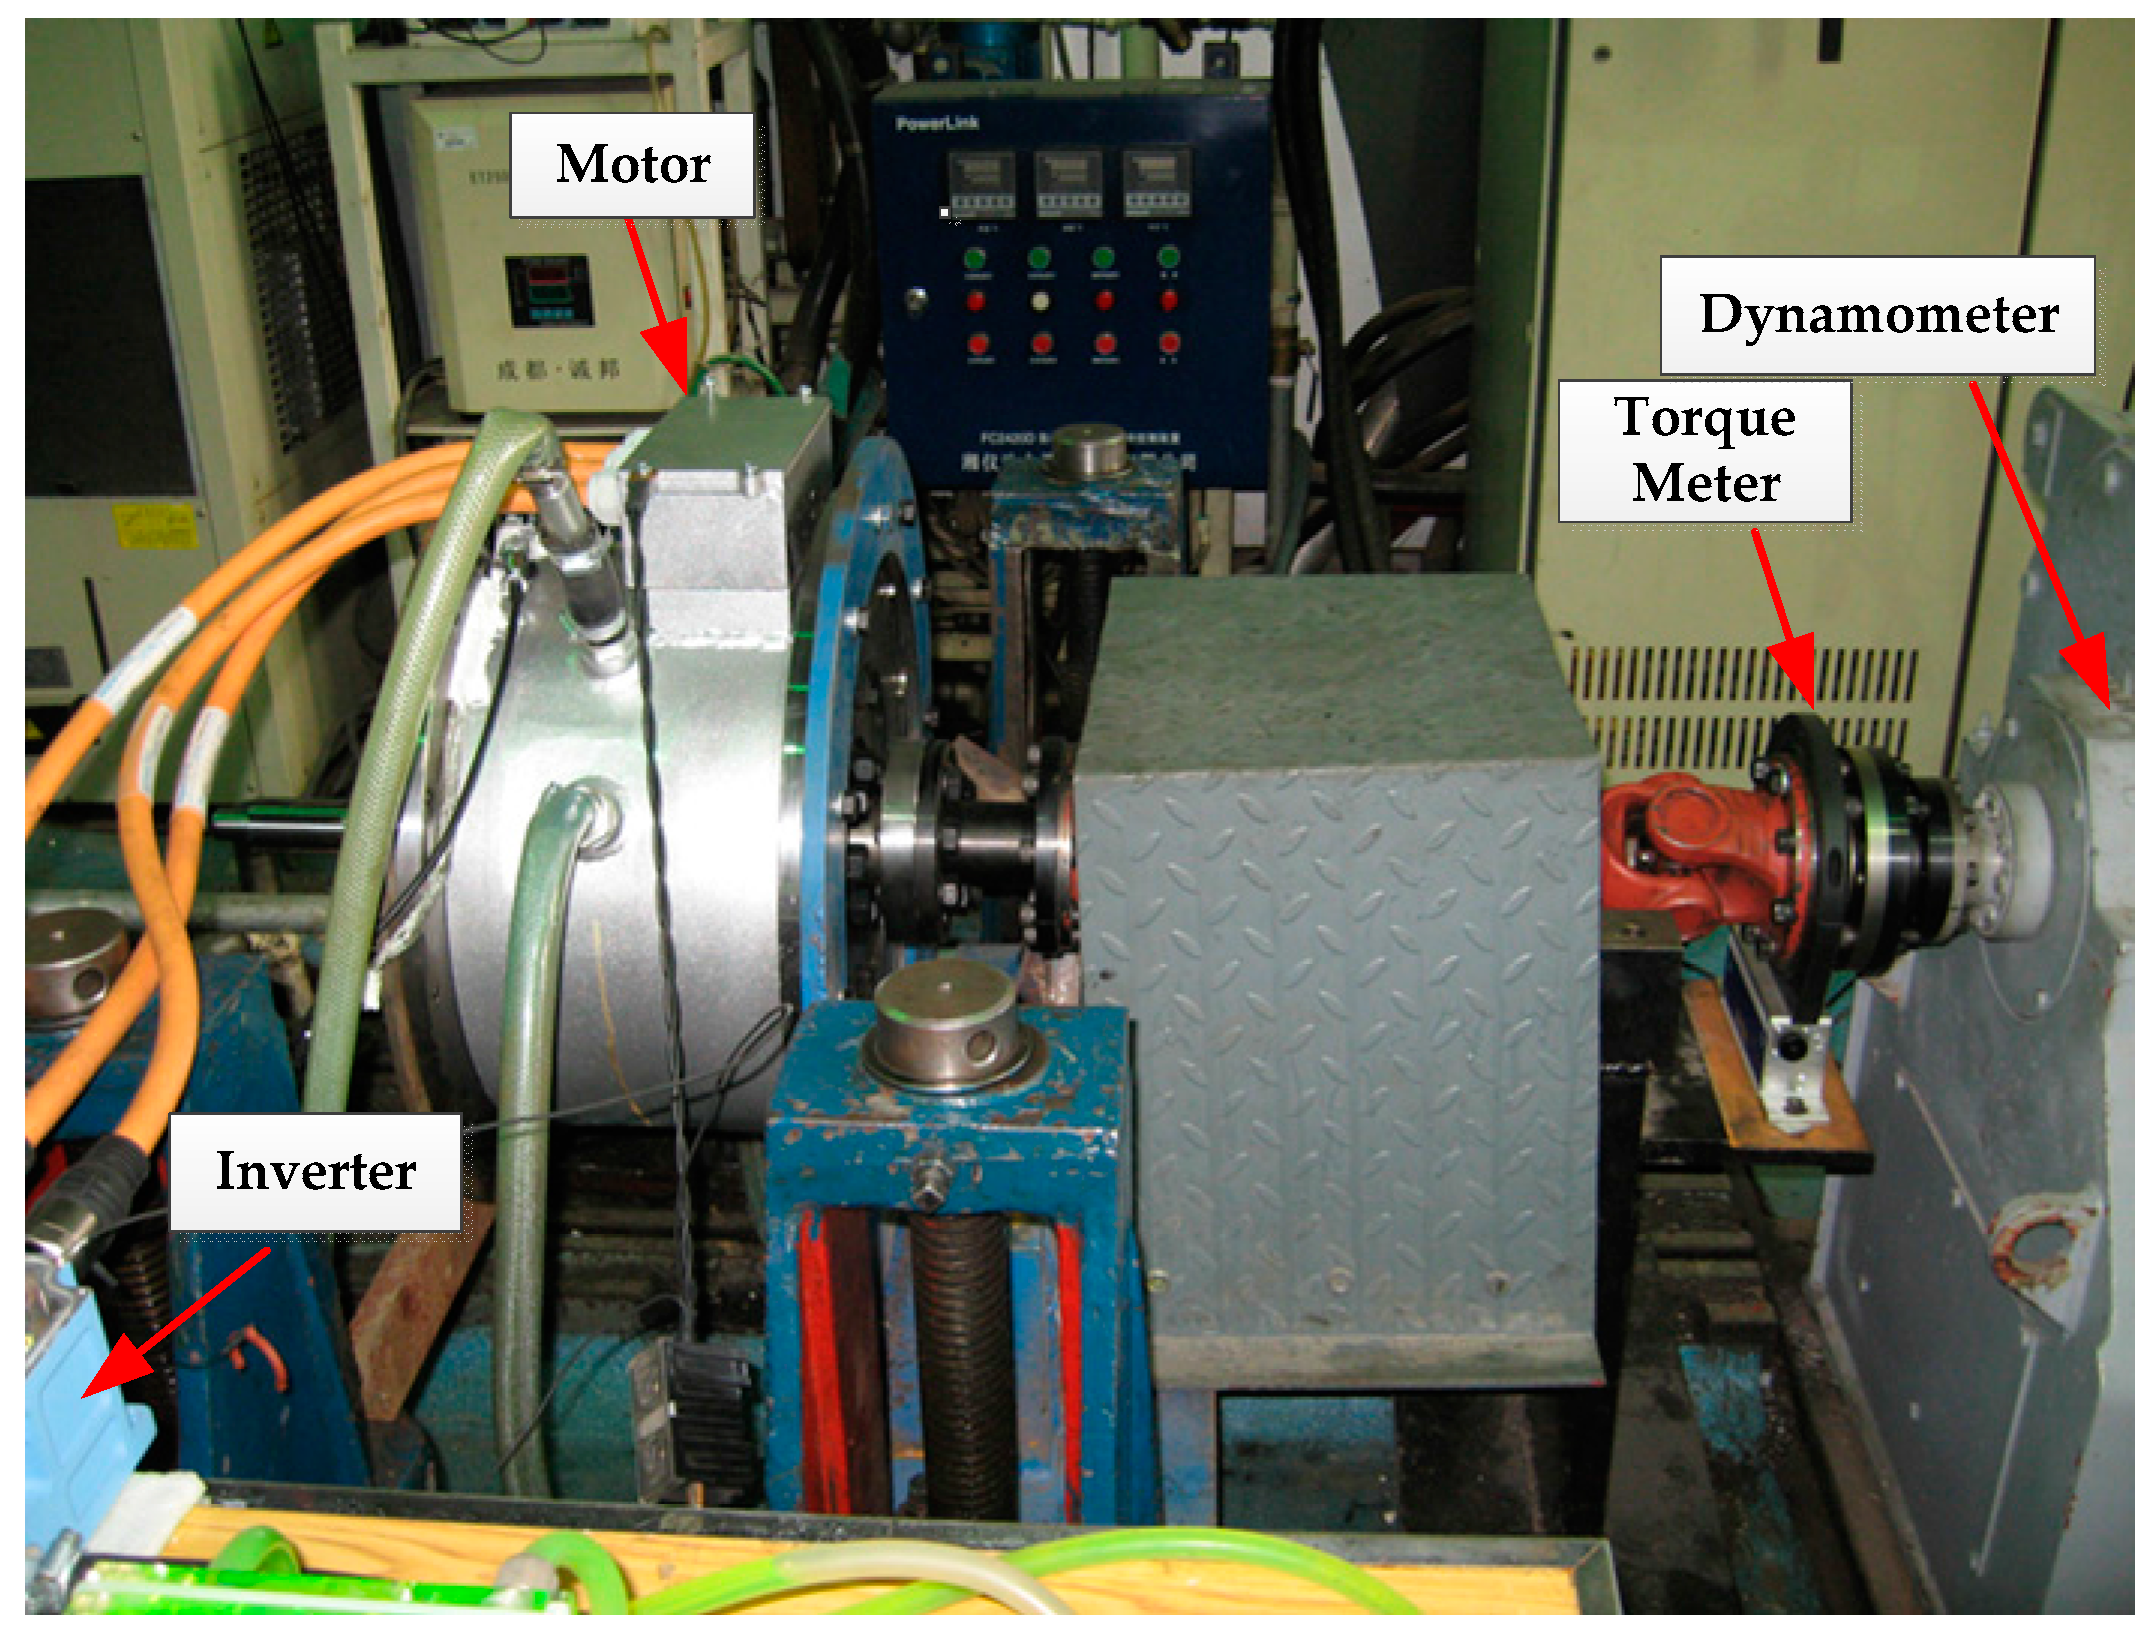 Energies Free Full Text Accurate And Efficient Torque Control Of An Interior Permanent